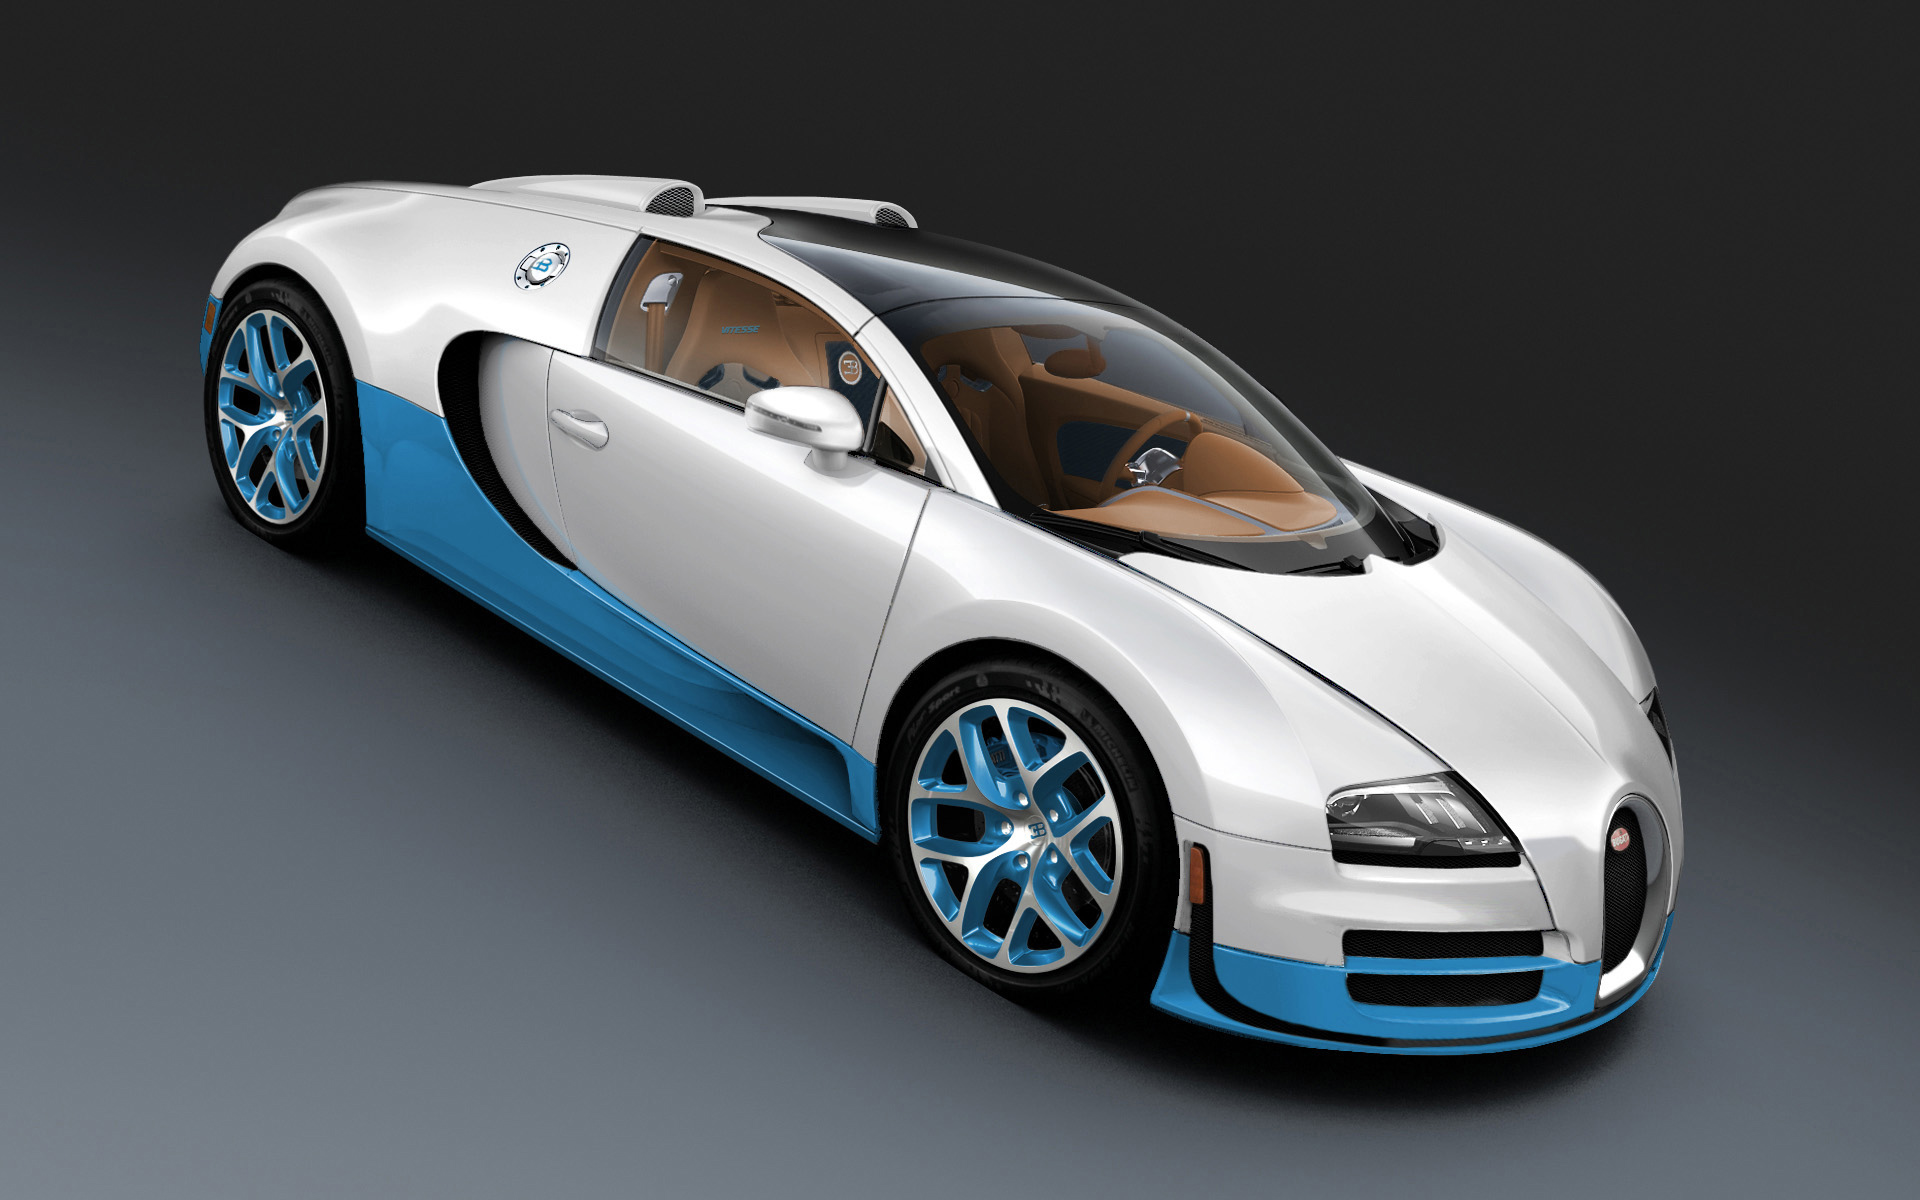 Cars Bugatti Veyron Grand Sport Vitesse Bianco Free Picture Download Image Of